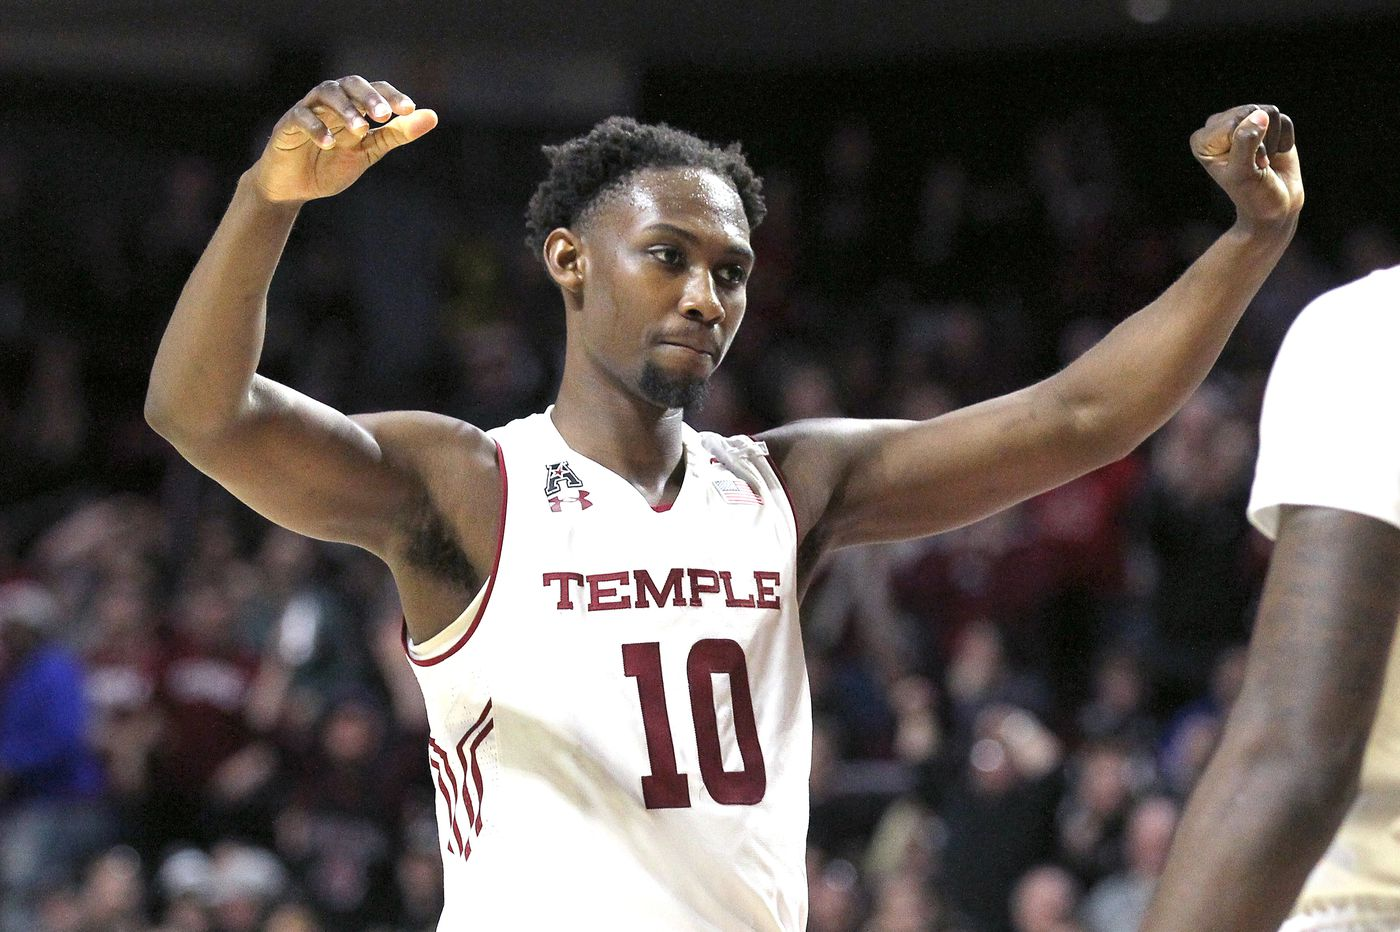 Temple can only hope for NCAA Tournament bid after Friday's loss to Wichita State